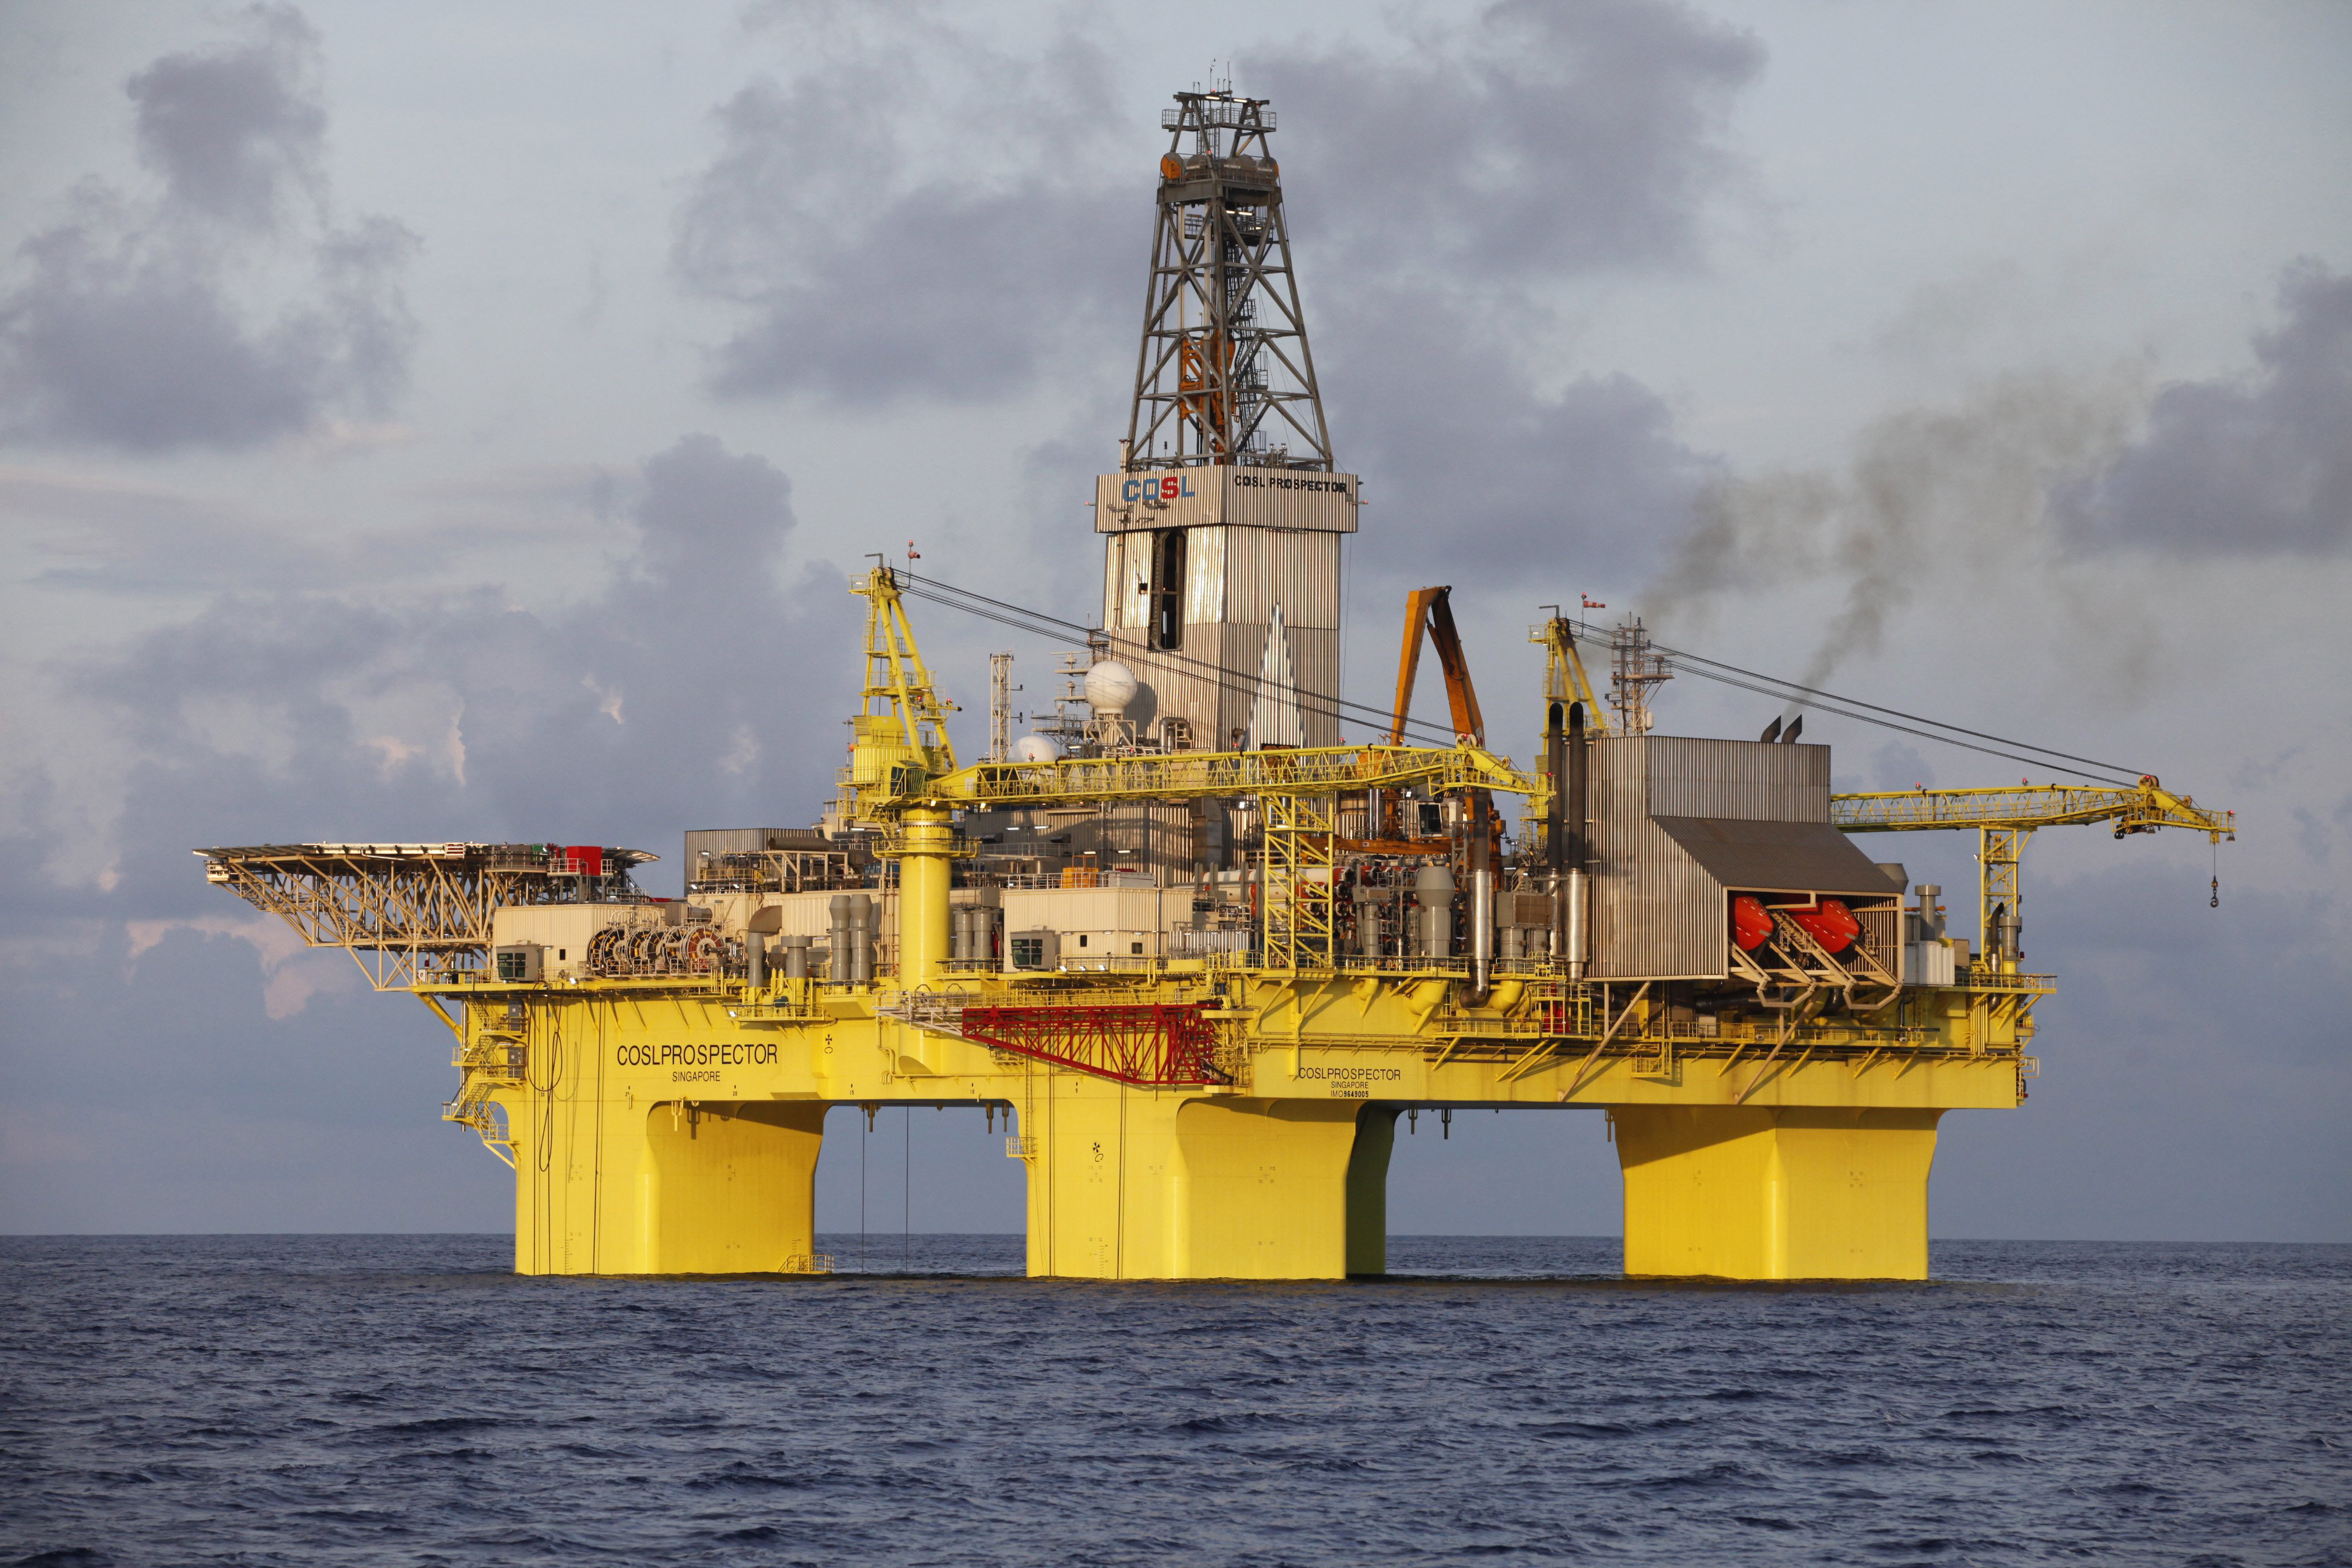 Oil Rig Nearing Drilling Site Otago Daily Times Online News